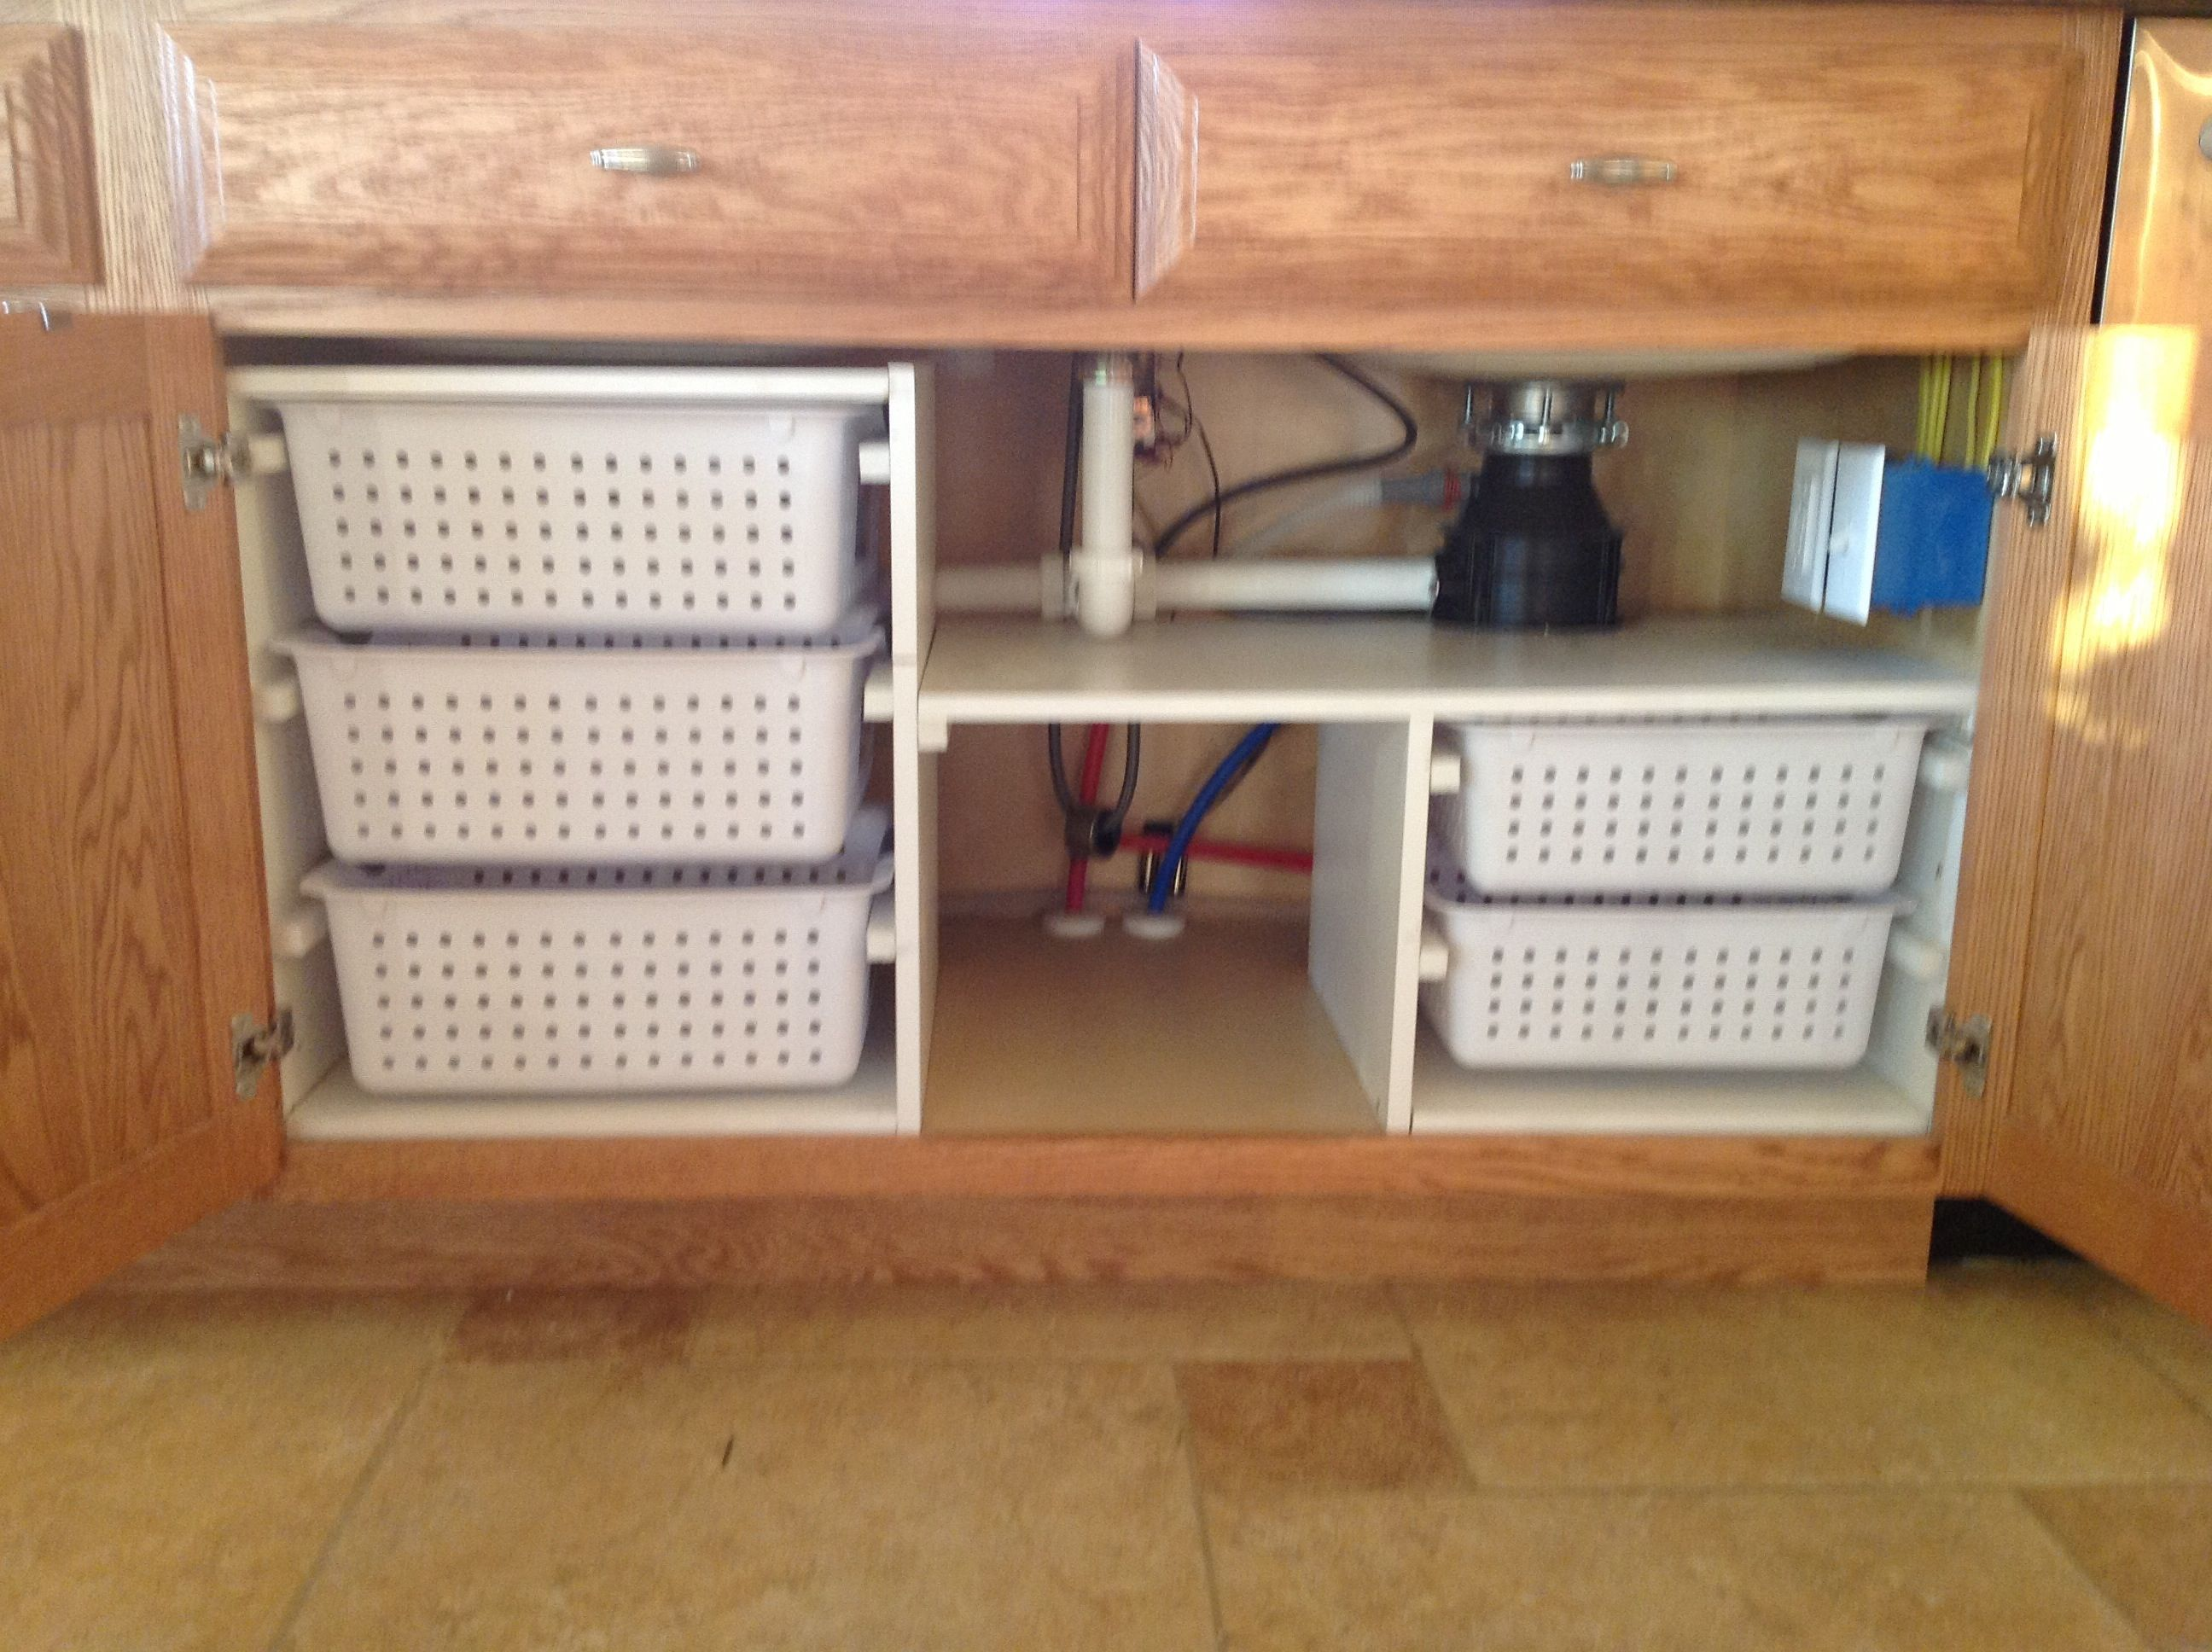 Storage For The Kitchen Under Kitchen Sink Organization My Husband Built For The Home